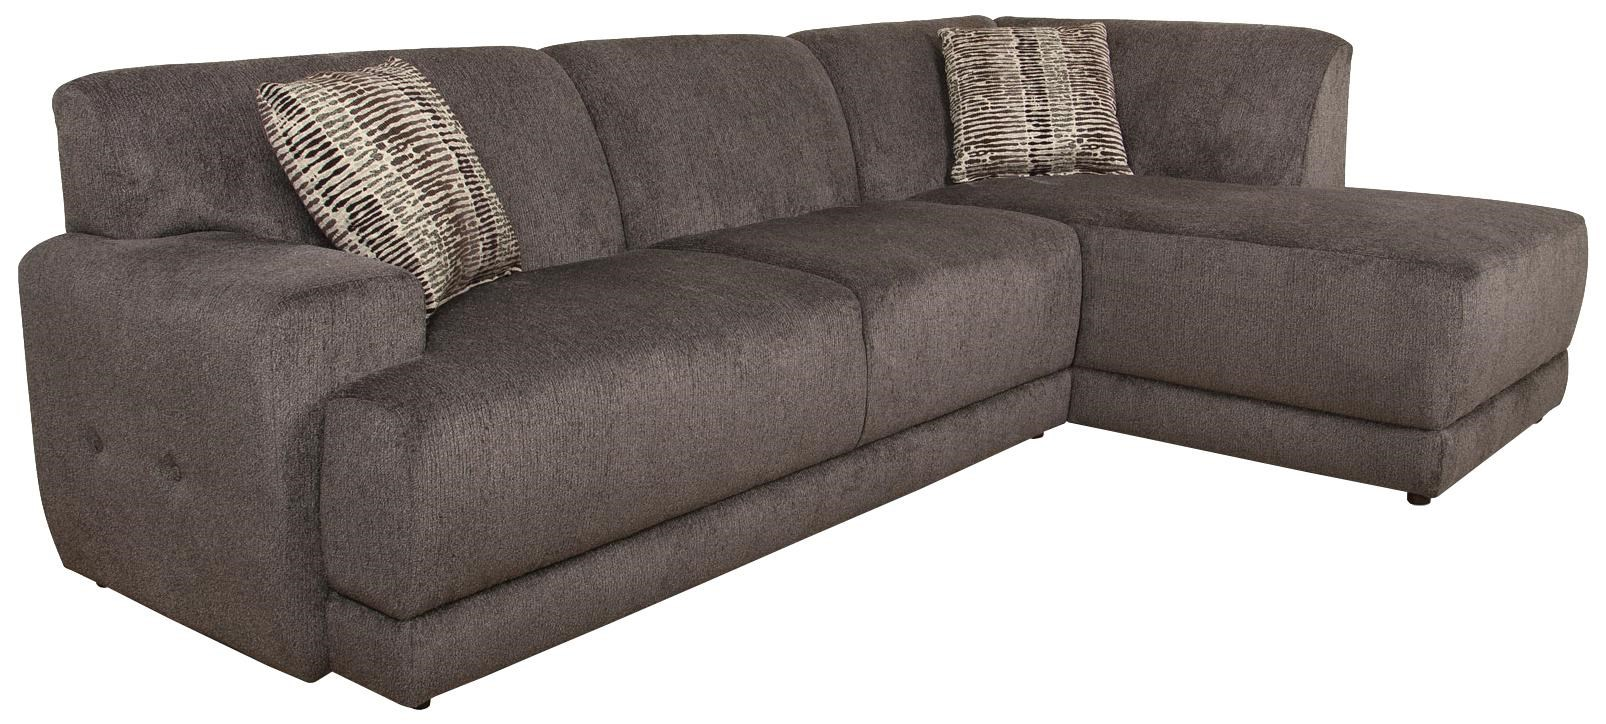 England Cole Sectional Sofa With Right Facing Chaise